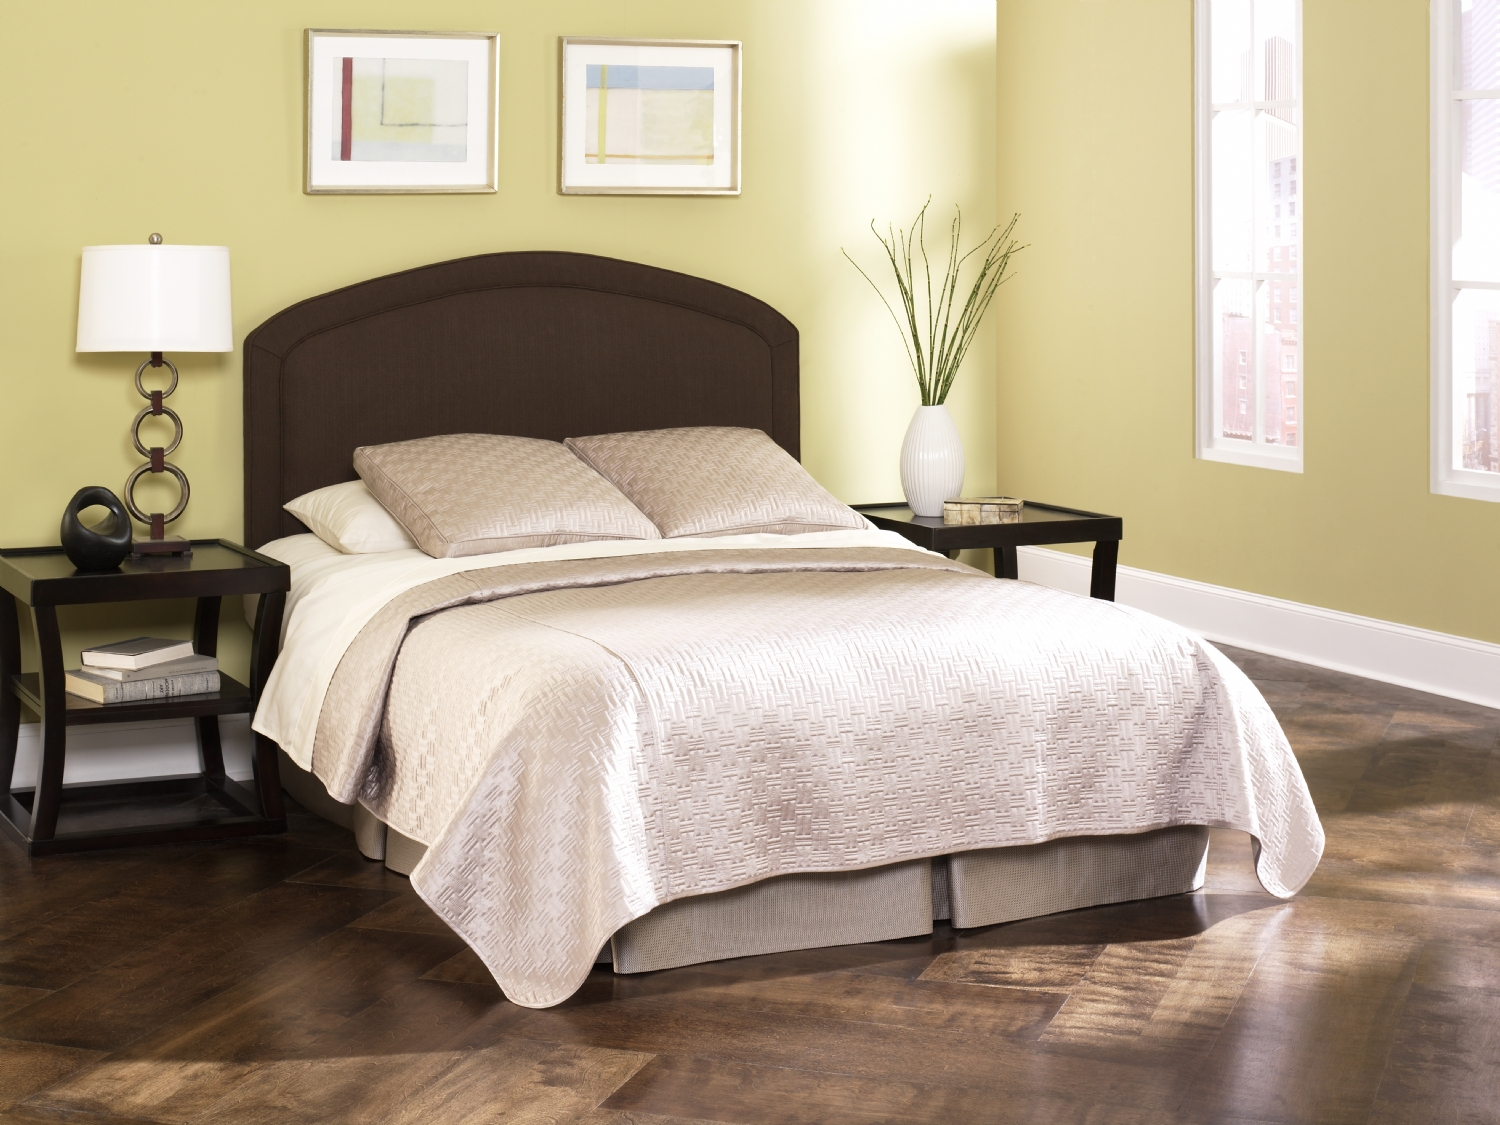 Bed Headboard Cherbourg Headboard Fashion Bed Group